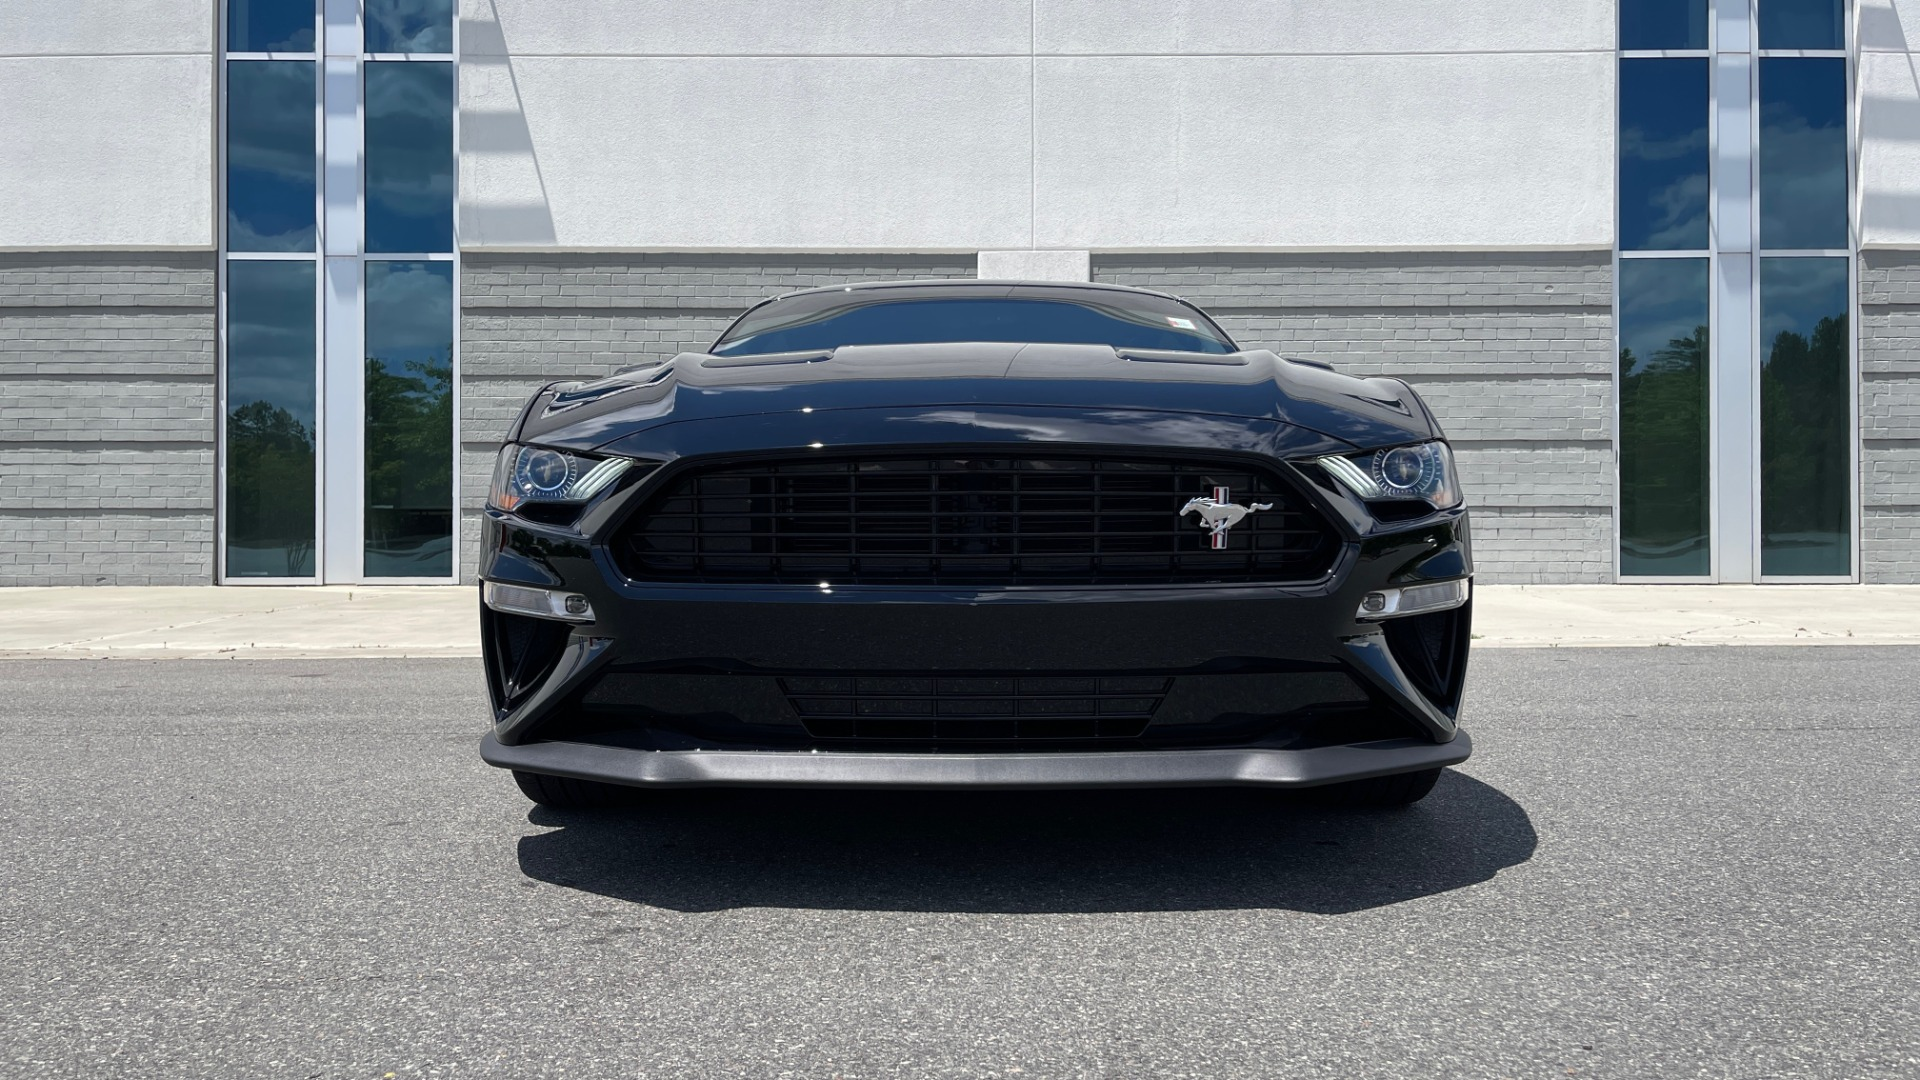 Used 2020 Ford MUSTANG GT PREMIUM / CALIFORNIA SPECIAL / 5.0L V8 / 6-SPD MAN for sale Sold at Formula Imports in Charlotte NC 28227 9